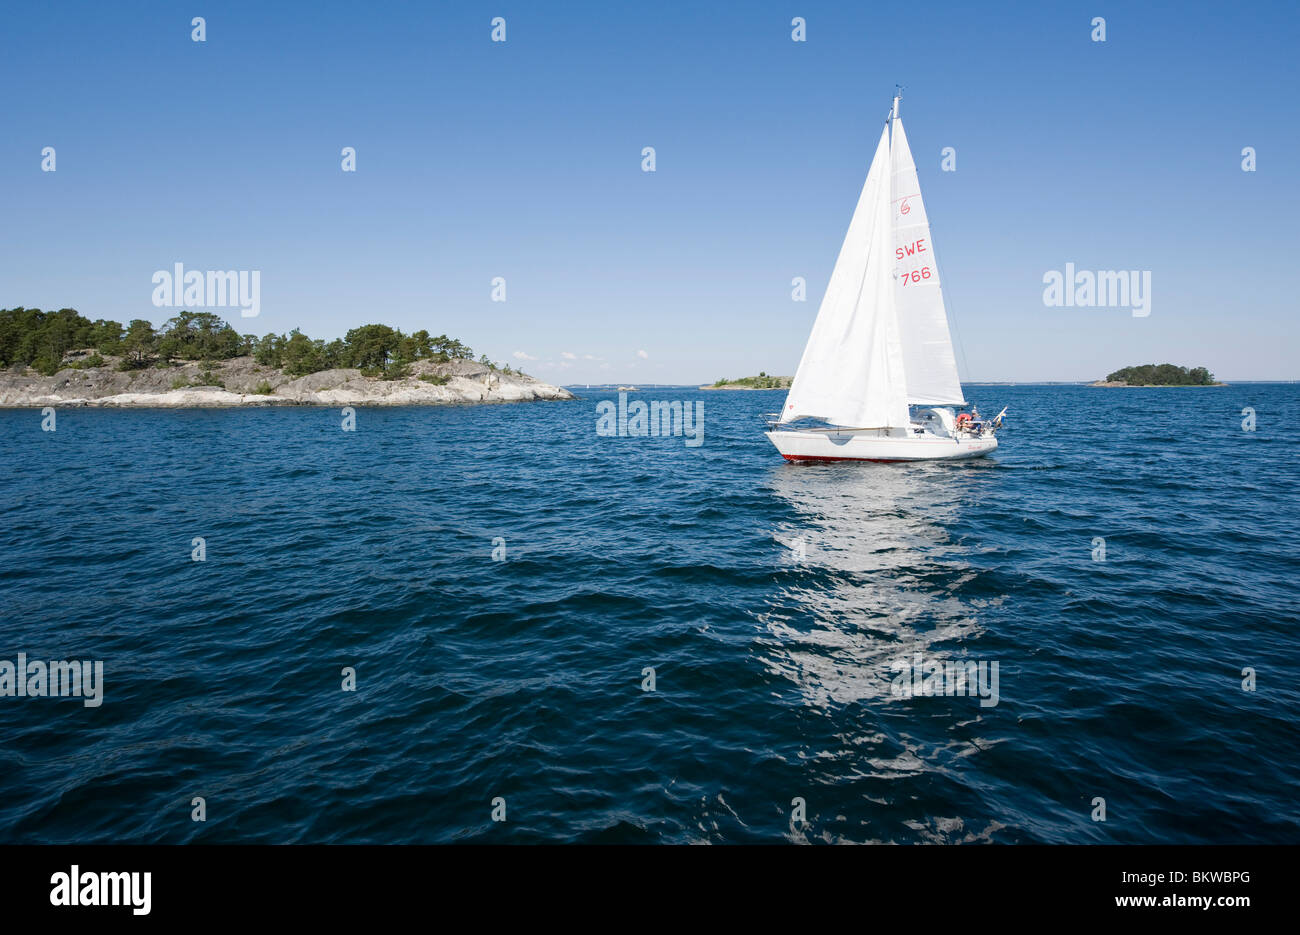 A small sailing boat - Stock Image